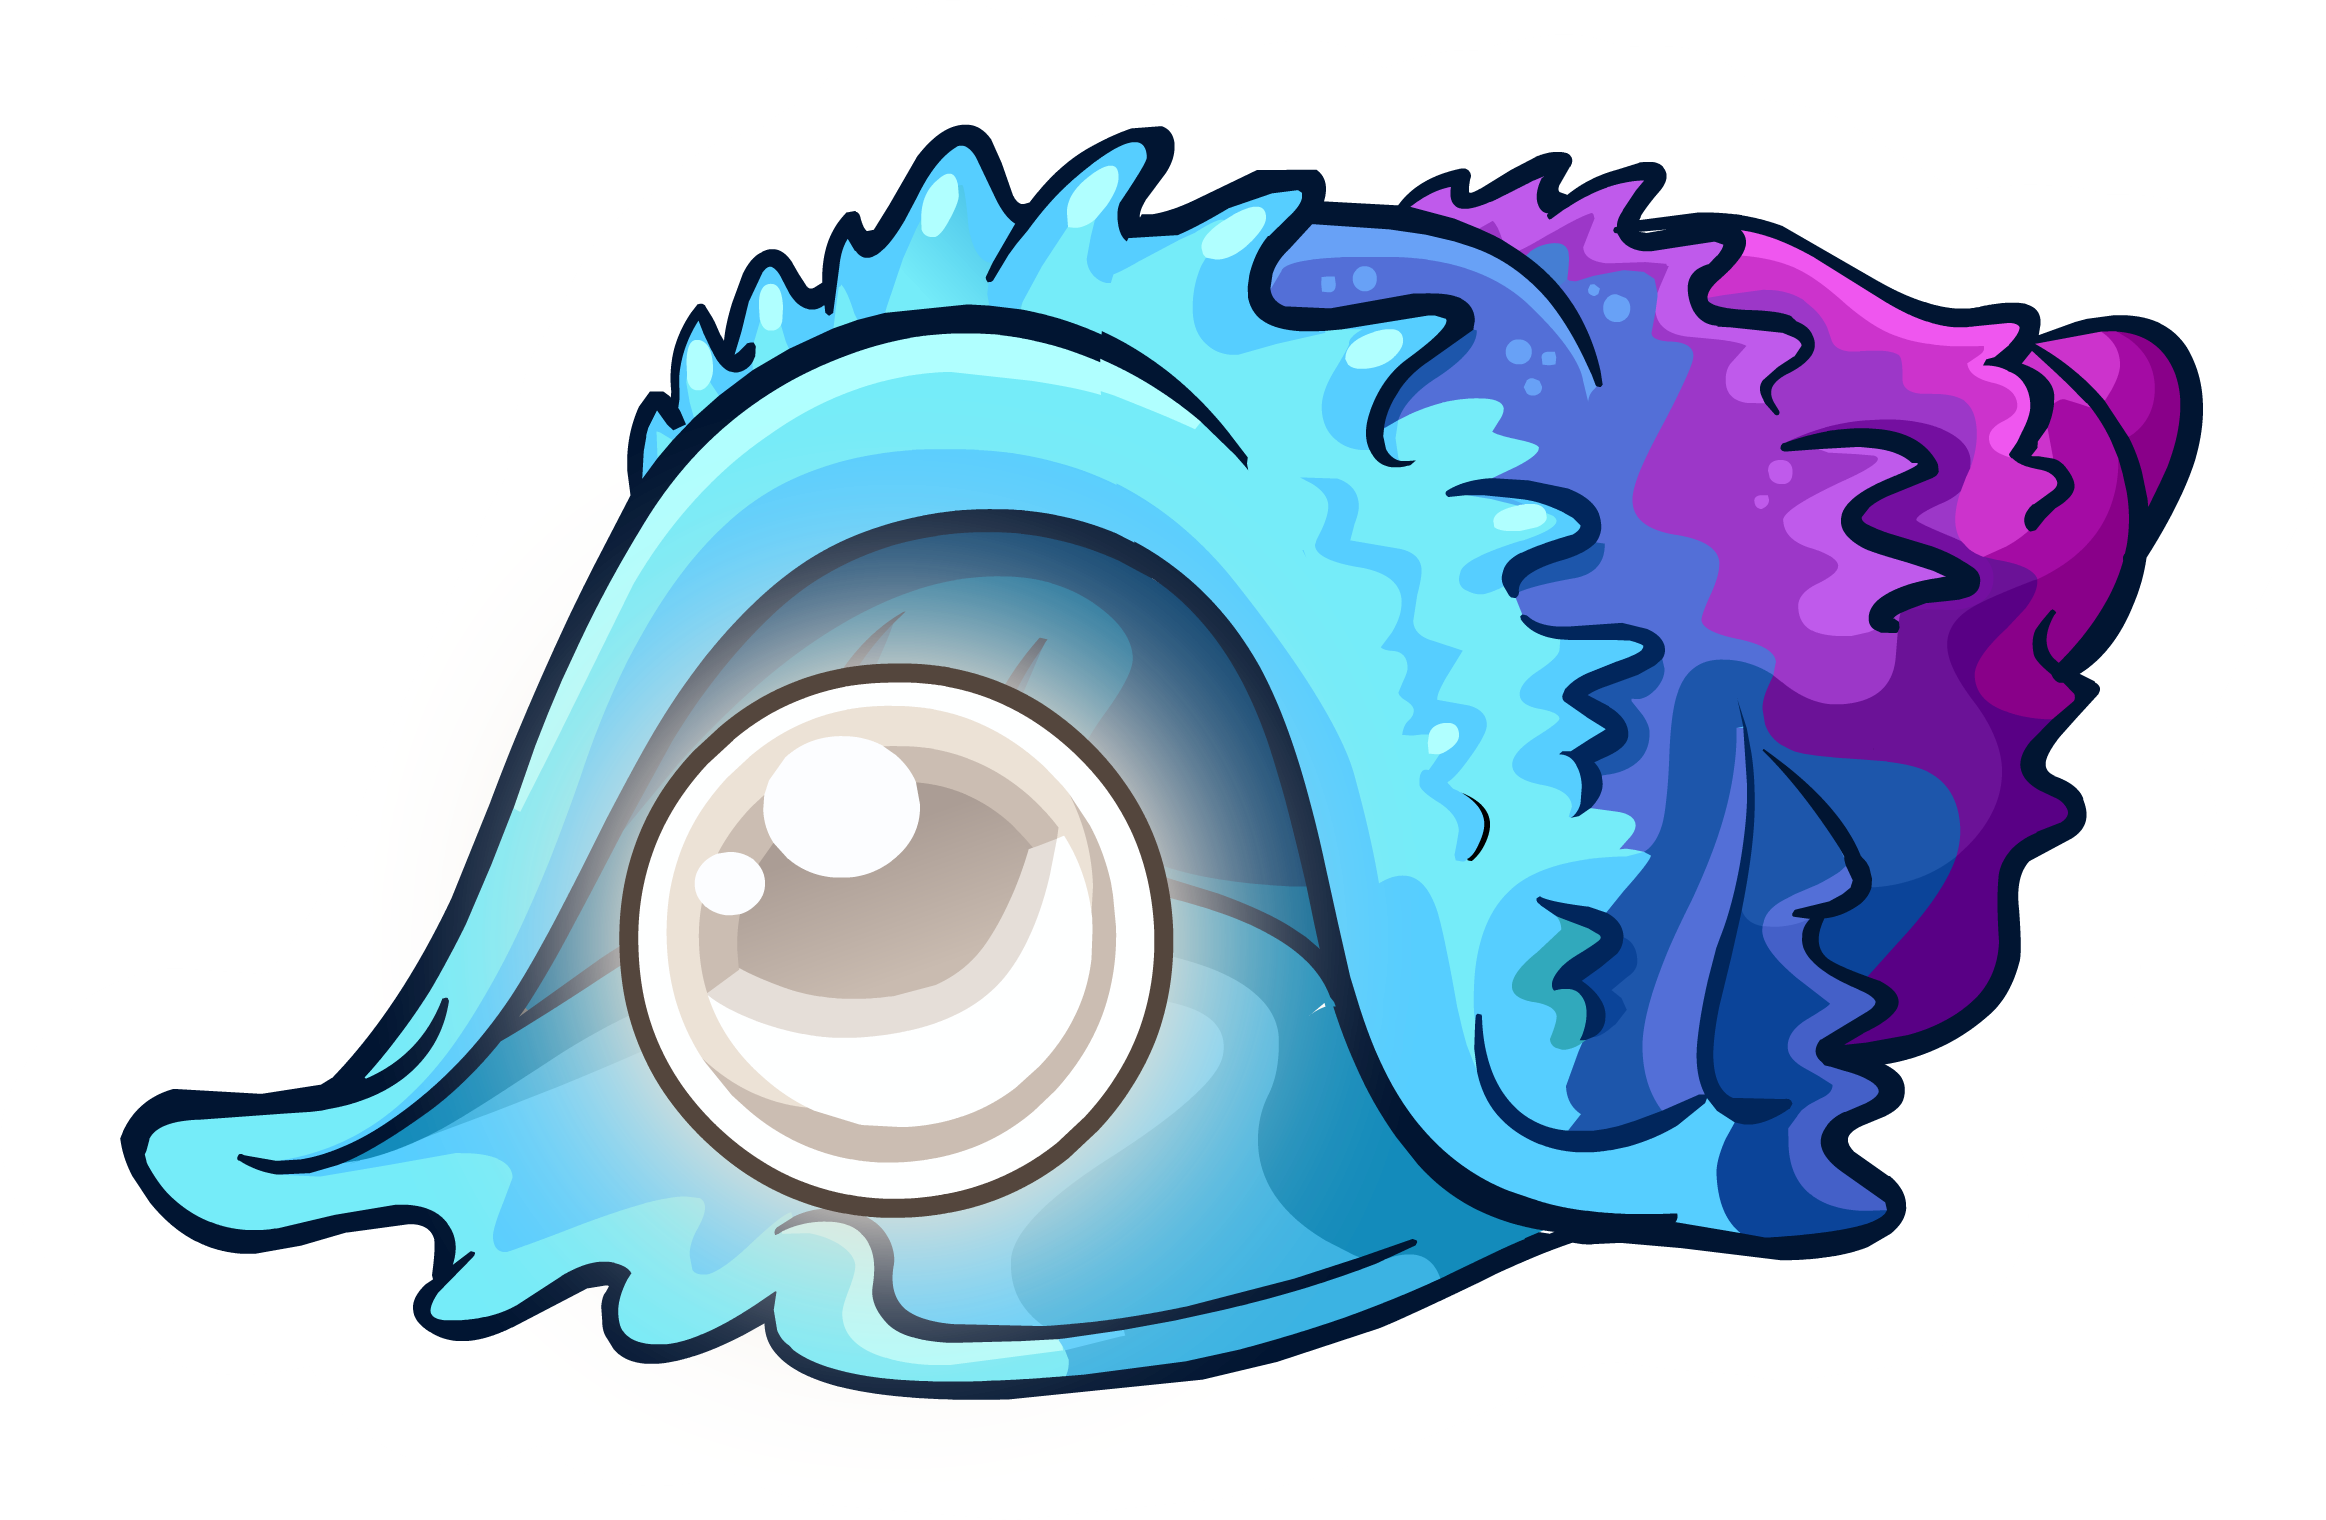 Tiedosto:Mermaid Shell Pin clothing icon ID 7062.png